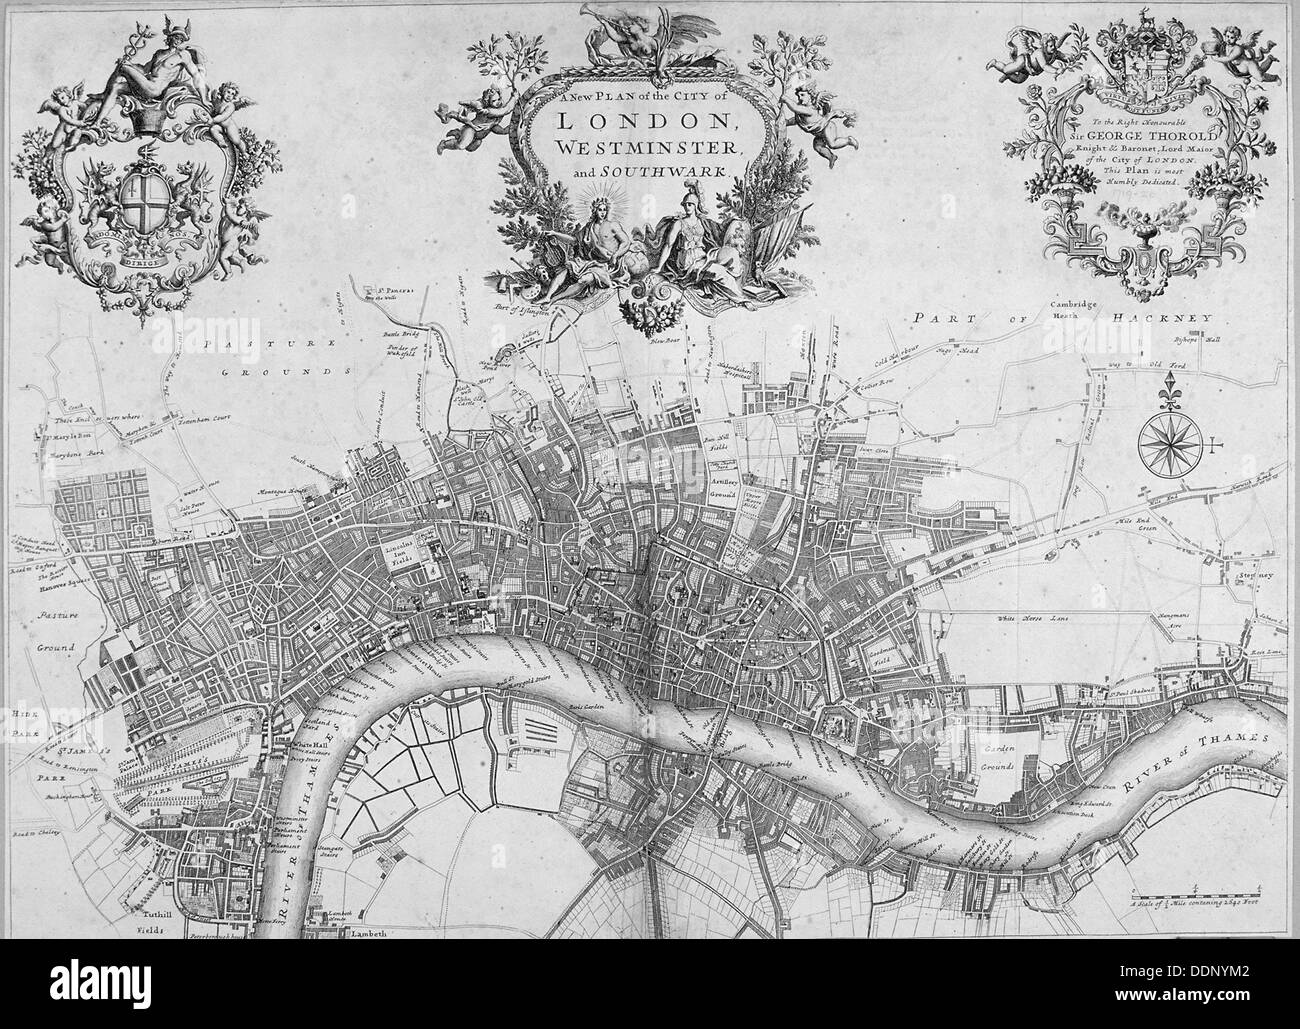 Map of Westminster, the City of London and Southwark, 1720.                                          Artist: Anon - Stock Image